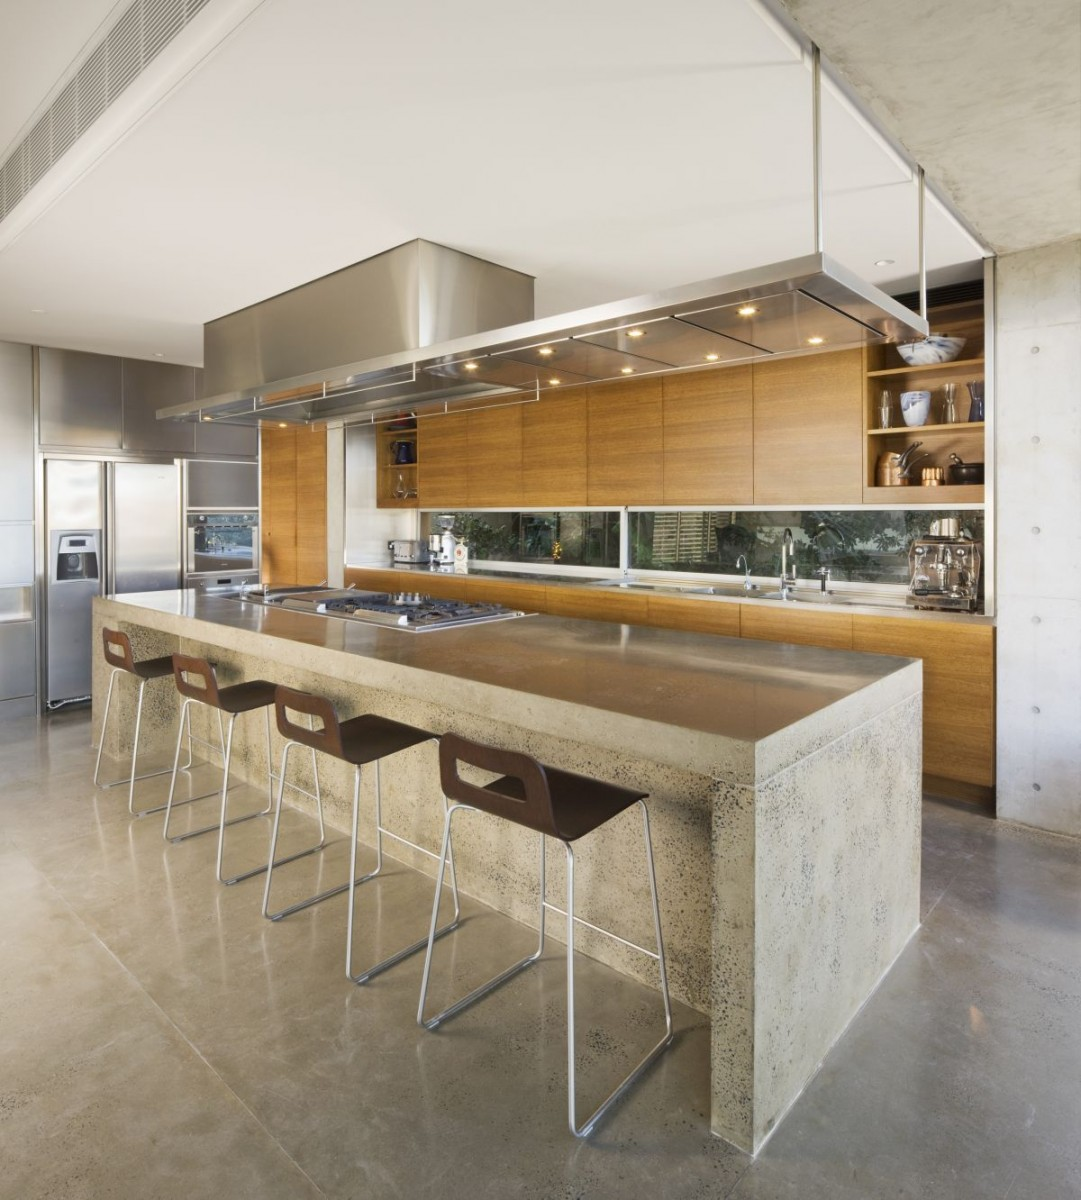 Upgraded Surfaces, Cabinetry And Appliances In A Modern Kitchen